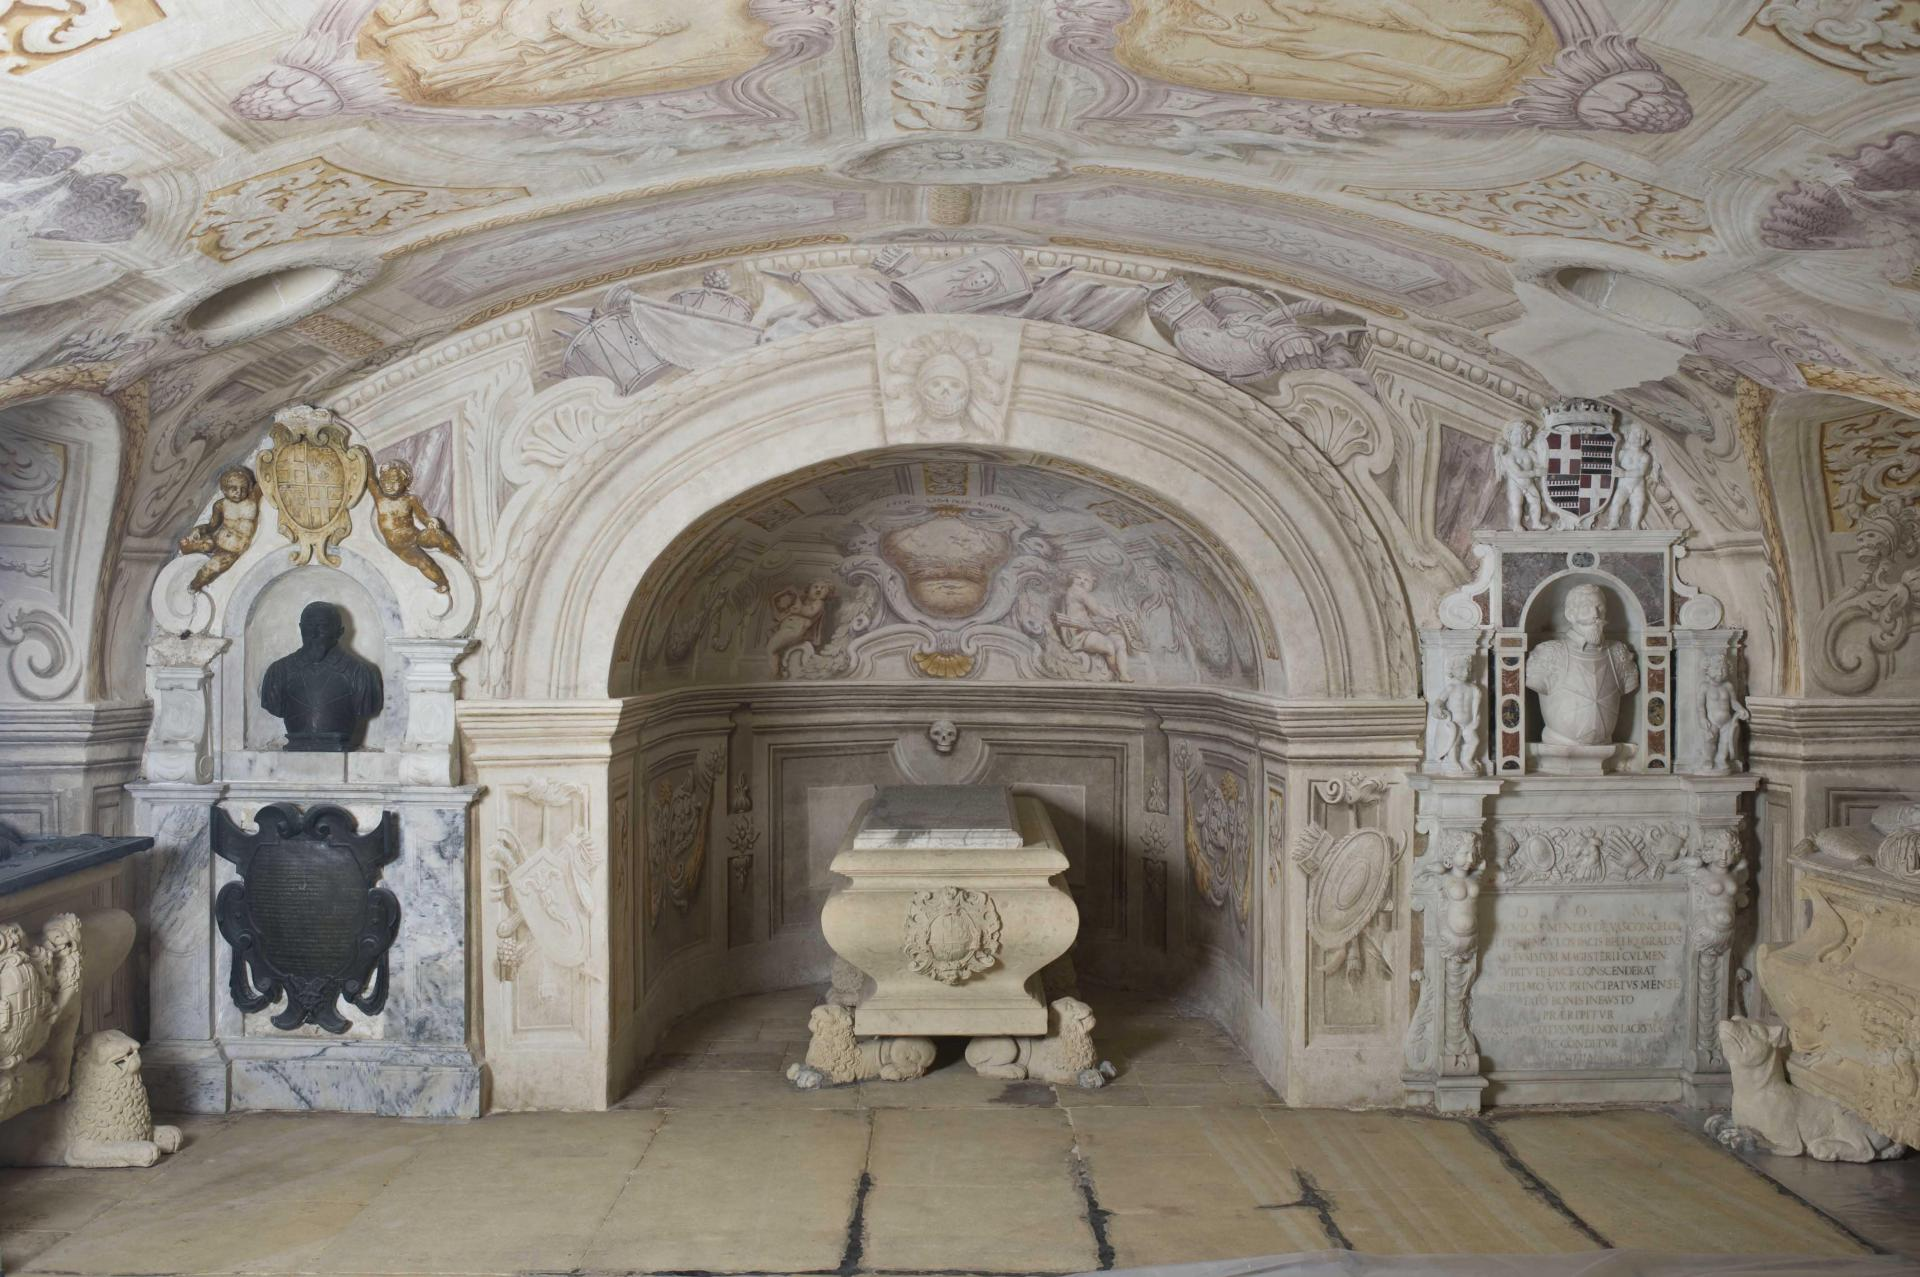 The Grand Master's Crypt at St John's Co Cathedral Winner of the Din l-Art Helwa PRIX D'HONNEUR in the category Restoration and Conservation